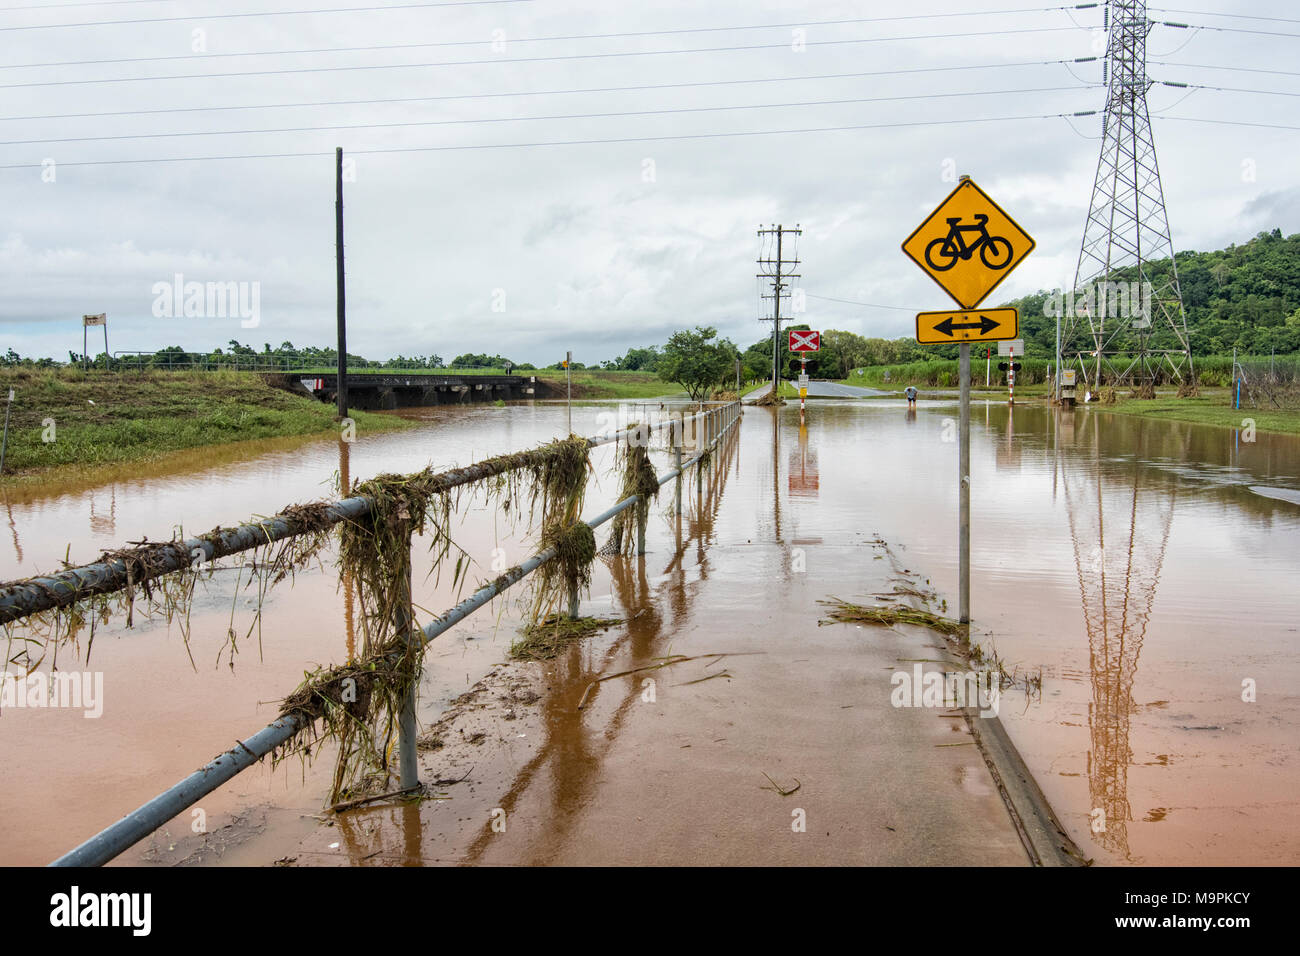 Queensland, Australia. 27th Mar, 2018. The aftermath of cyclone Nora has brought floods and cut off roads in Far North Queensland. Here is Redlynch, a suburb of Cairns on 27th March 2018, FNQ, QLD, Australia Credit: Genevieve Vallee/Alamy Live News - Stock Image